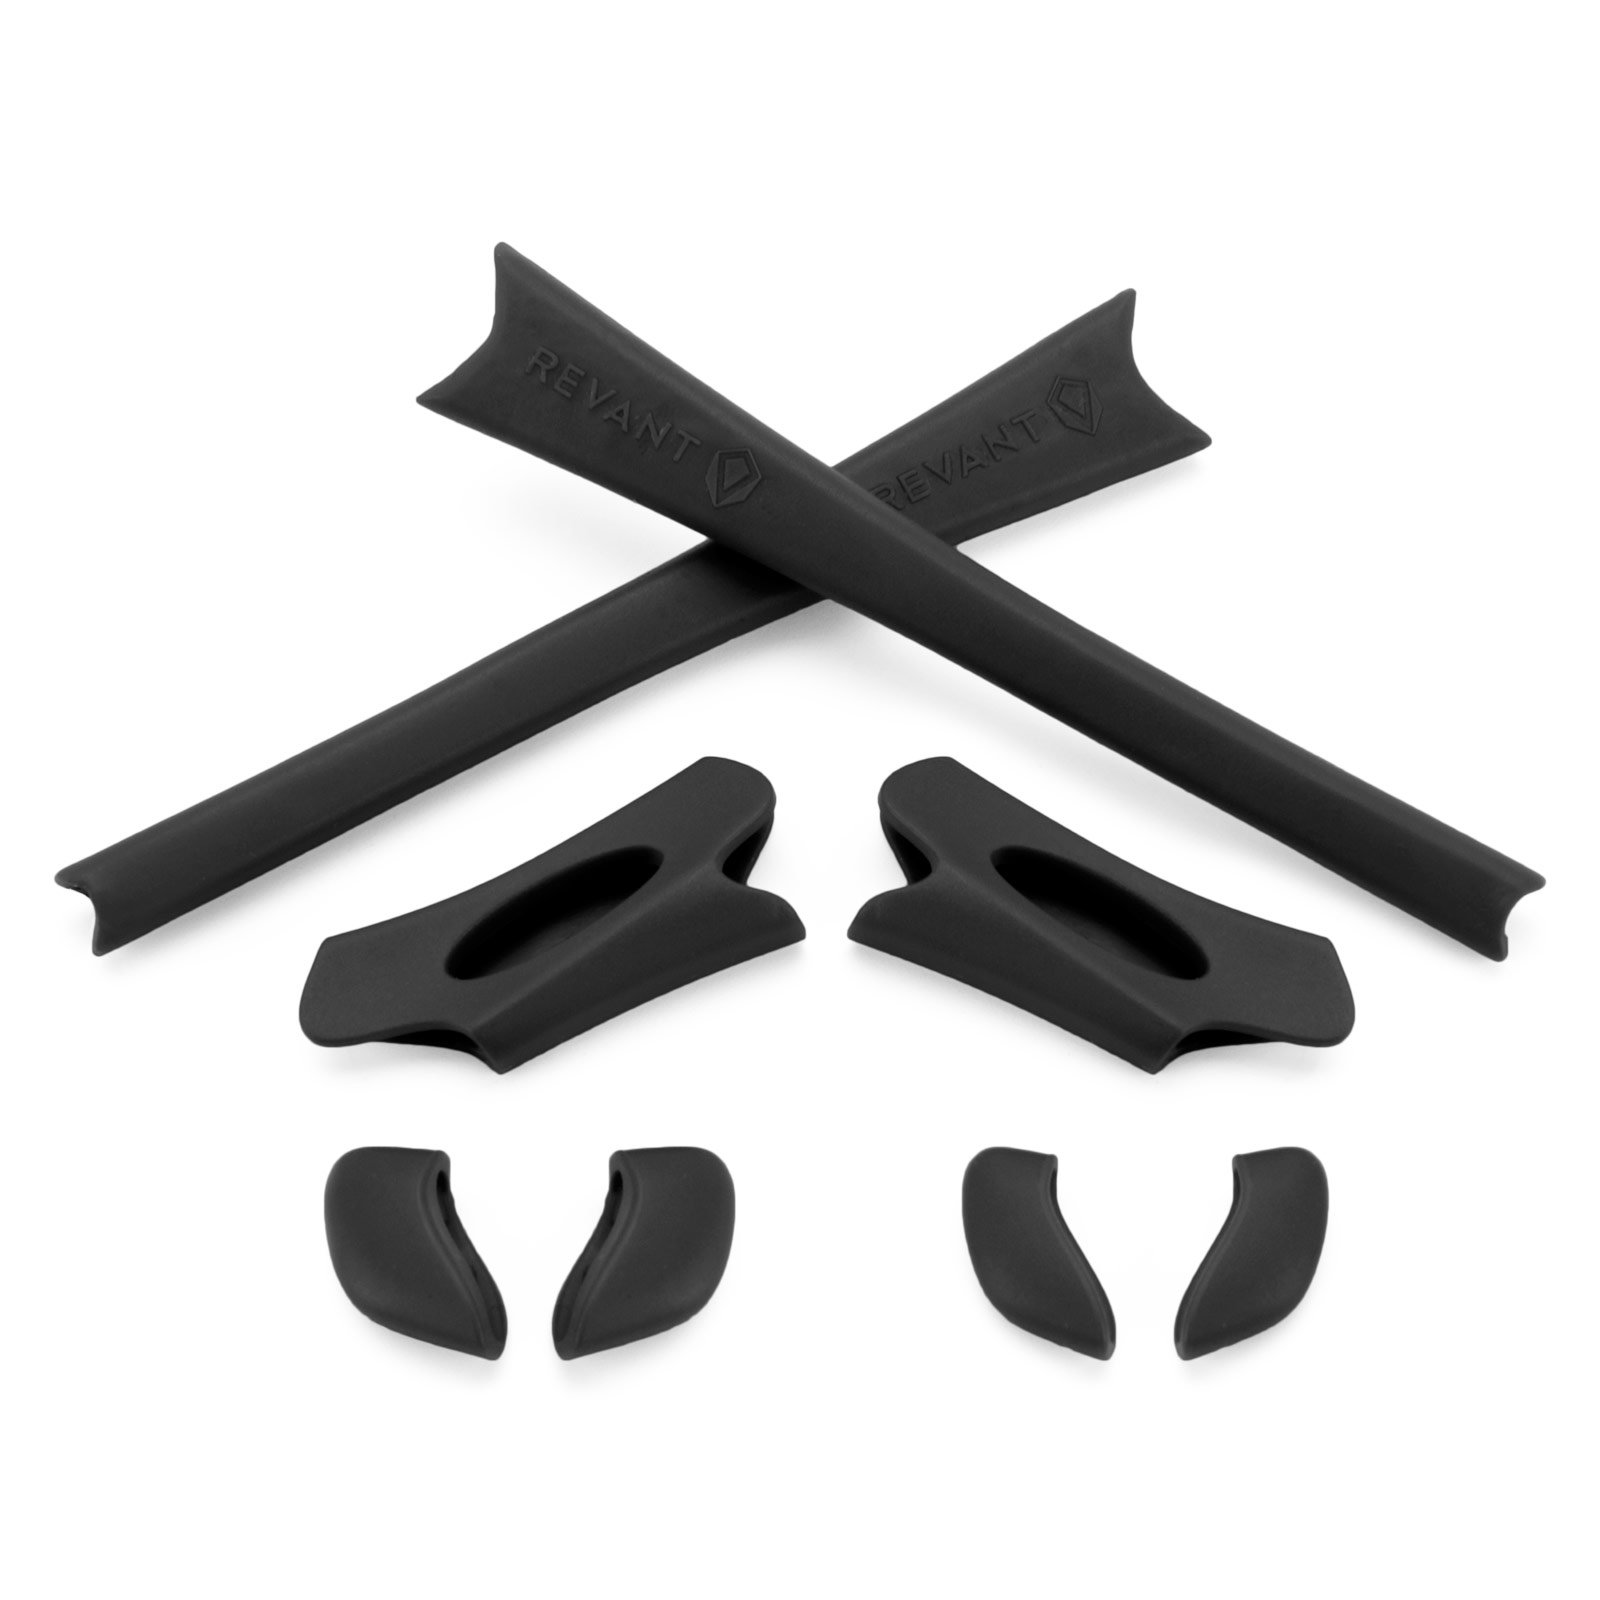 749ba36728 Revant MaxGrip Temple Sleeve Nose Pad Kit for Oakley Flak Jacket - Black  product image